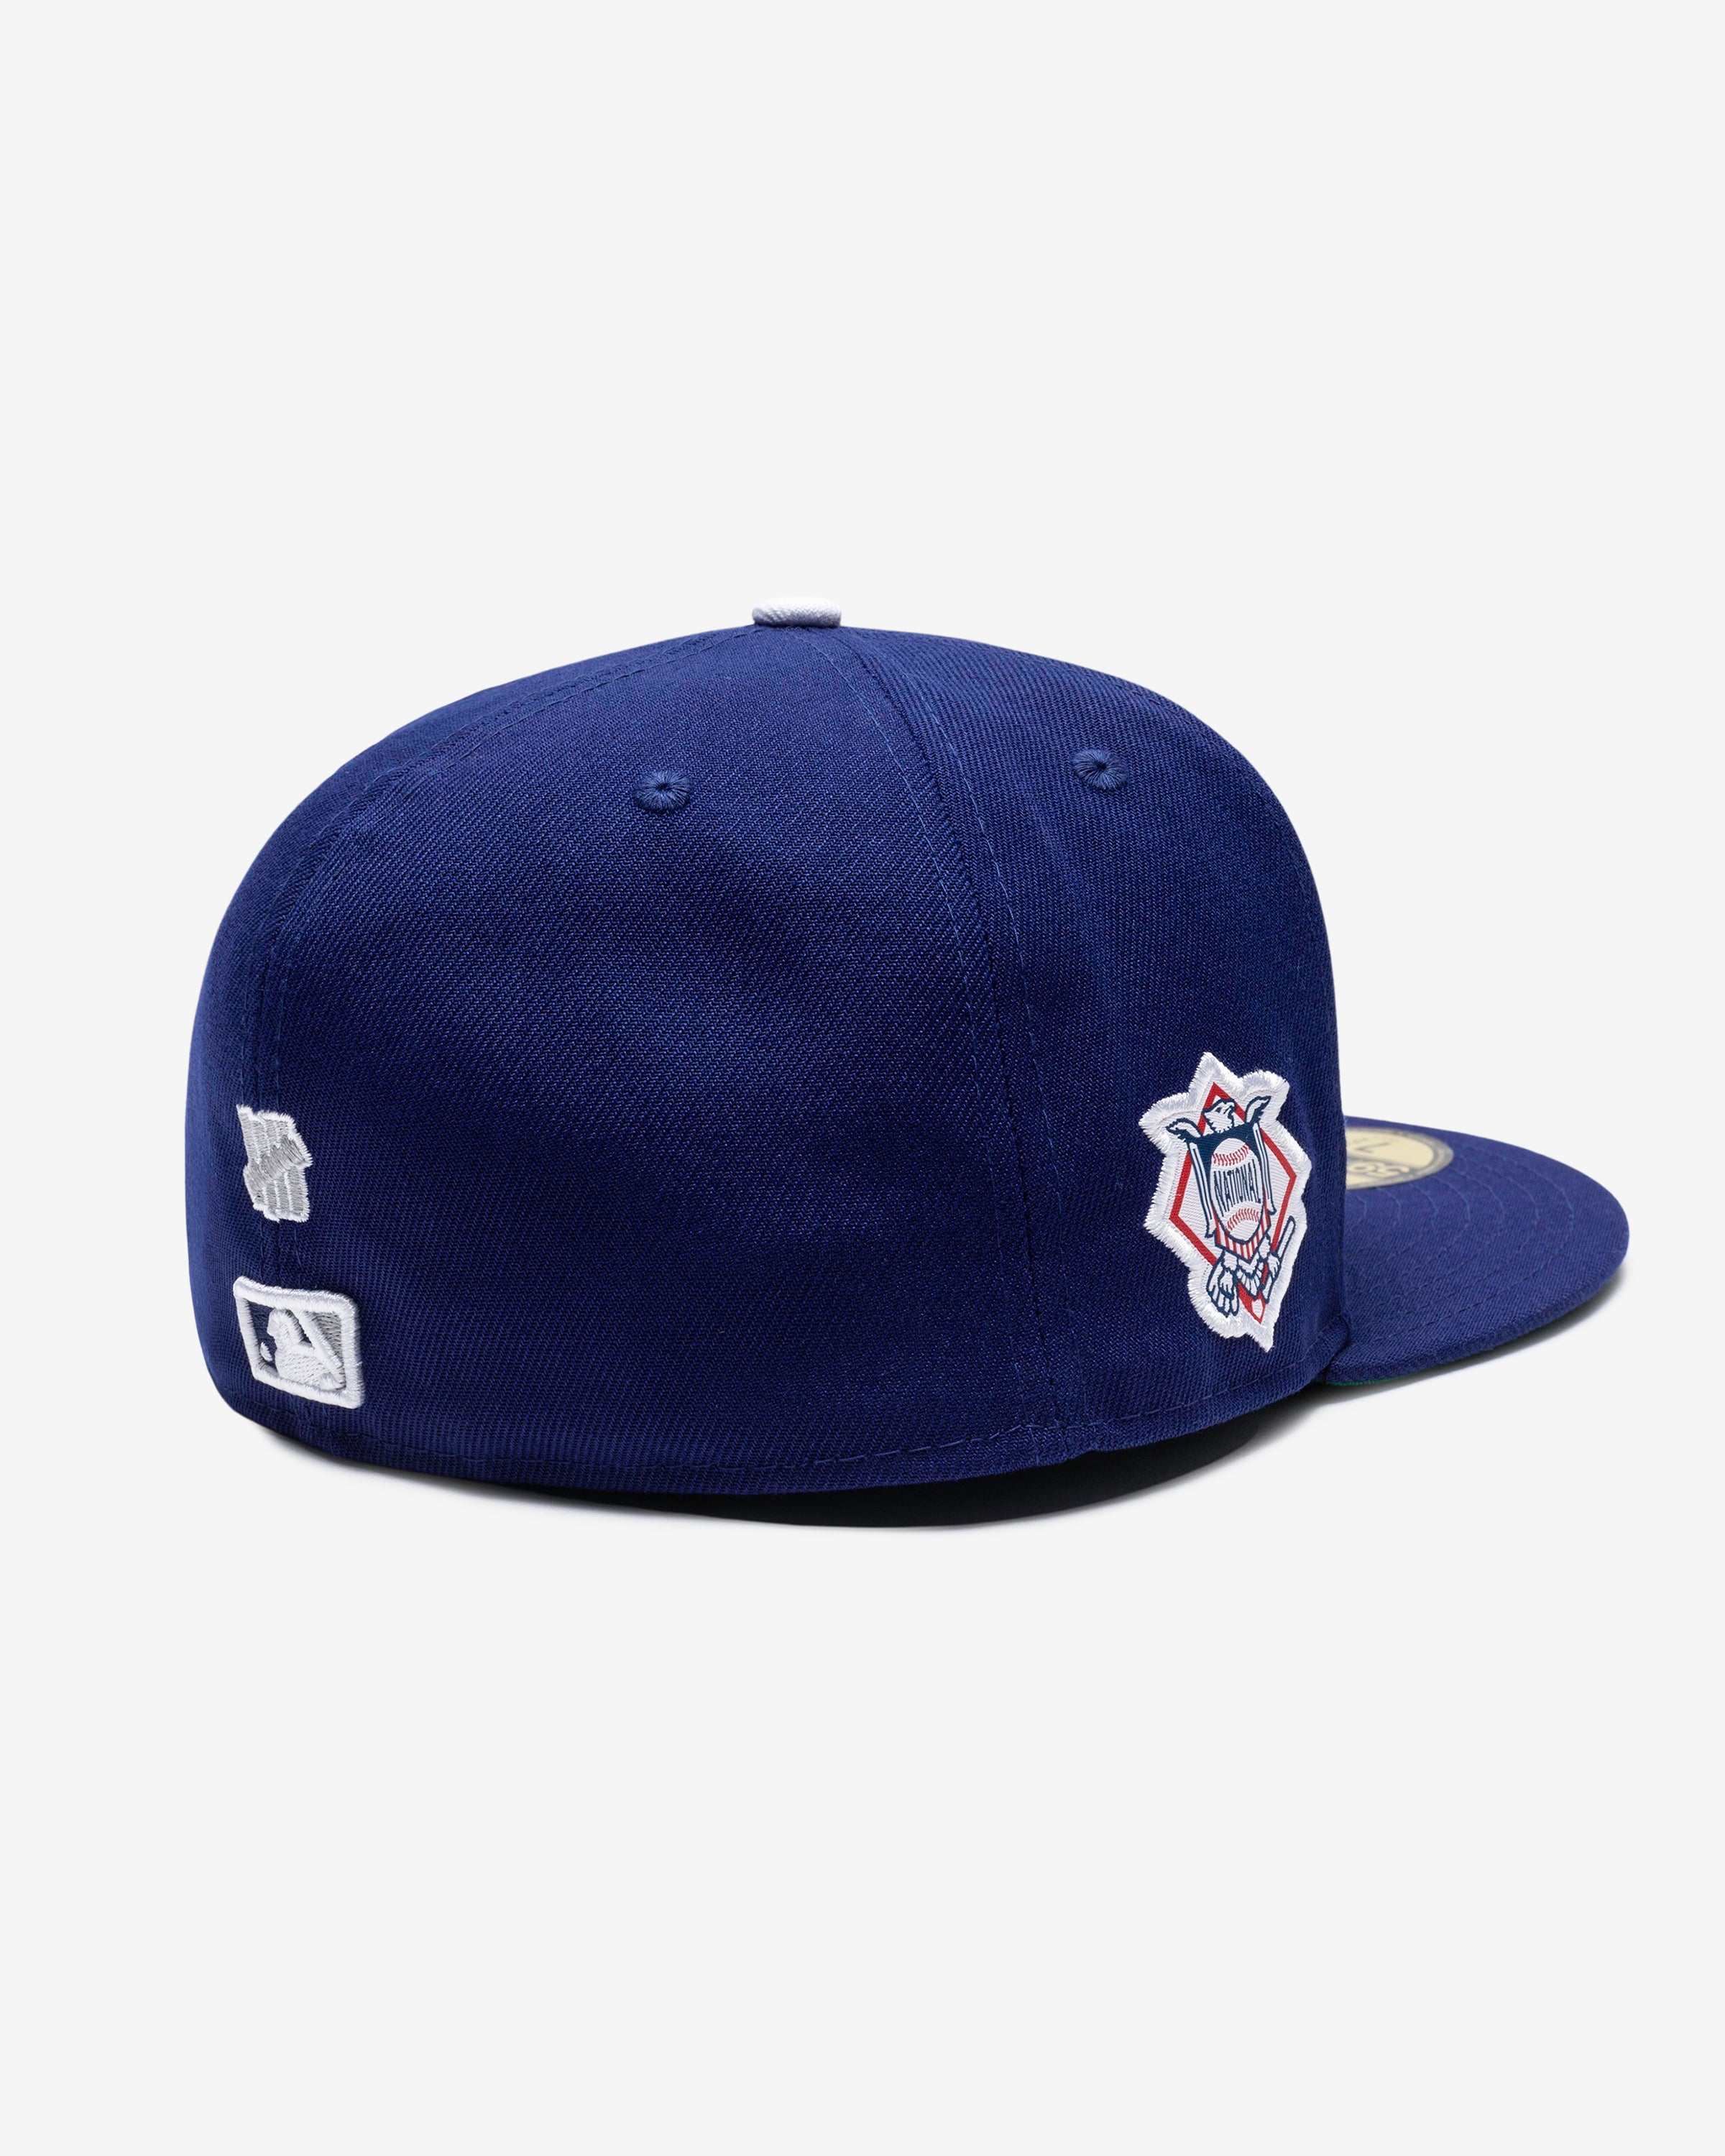 UNDEFEATED X NE X MLB FITTED - LOS ANGELES DODGERS